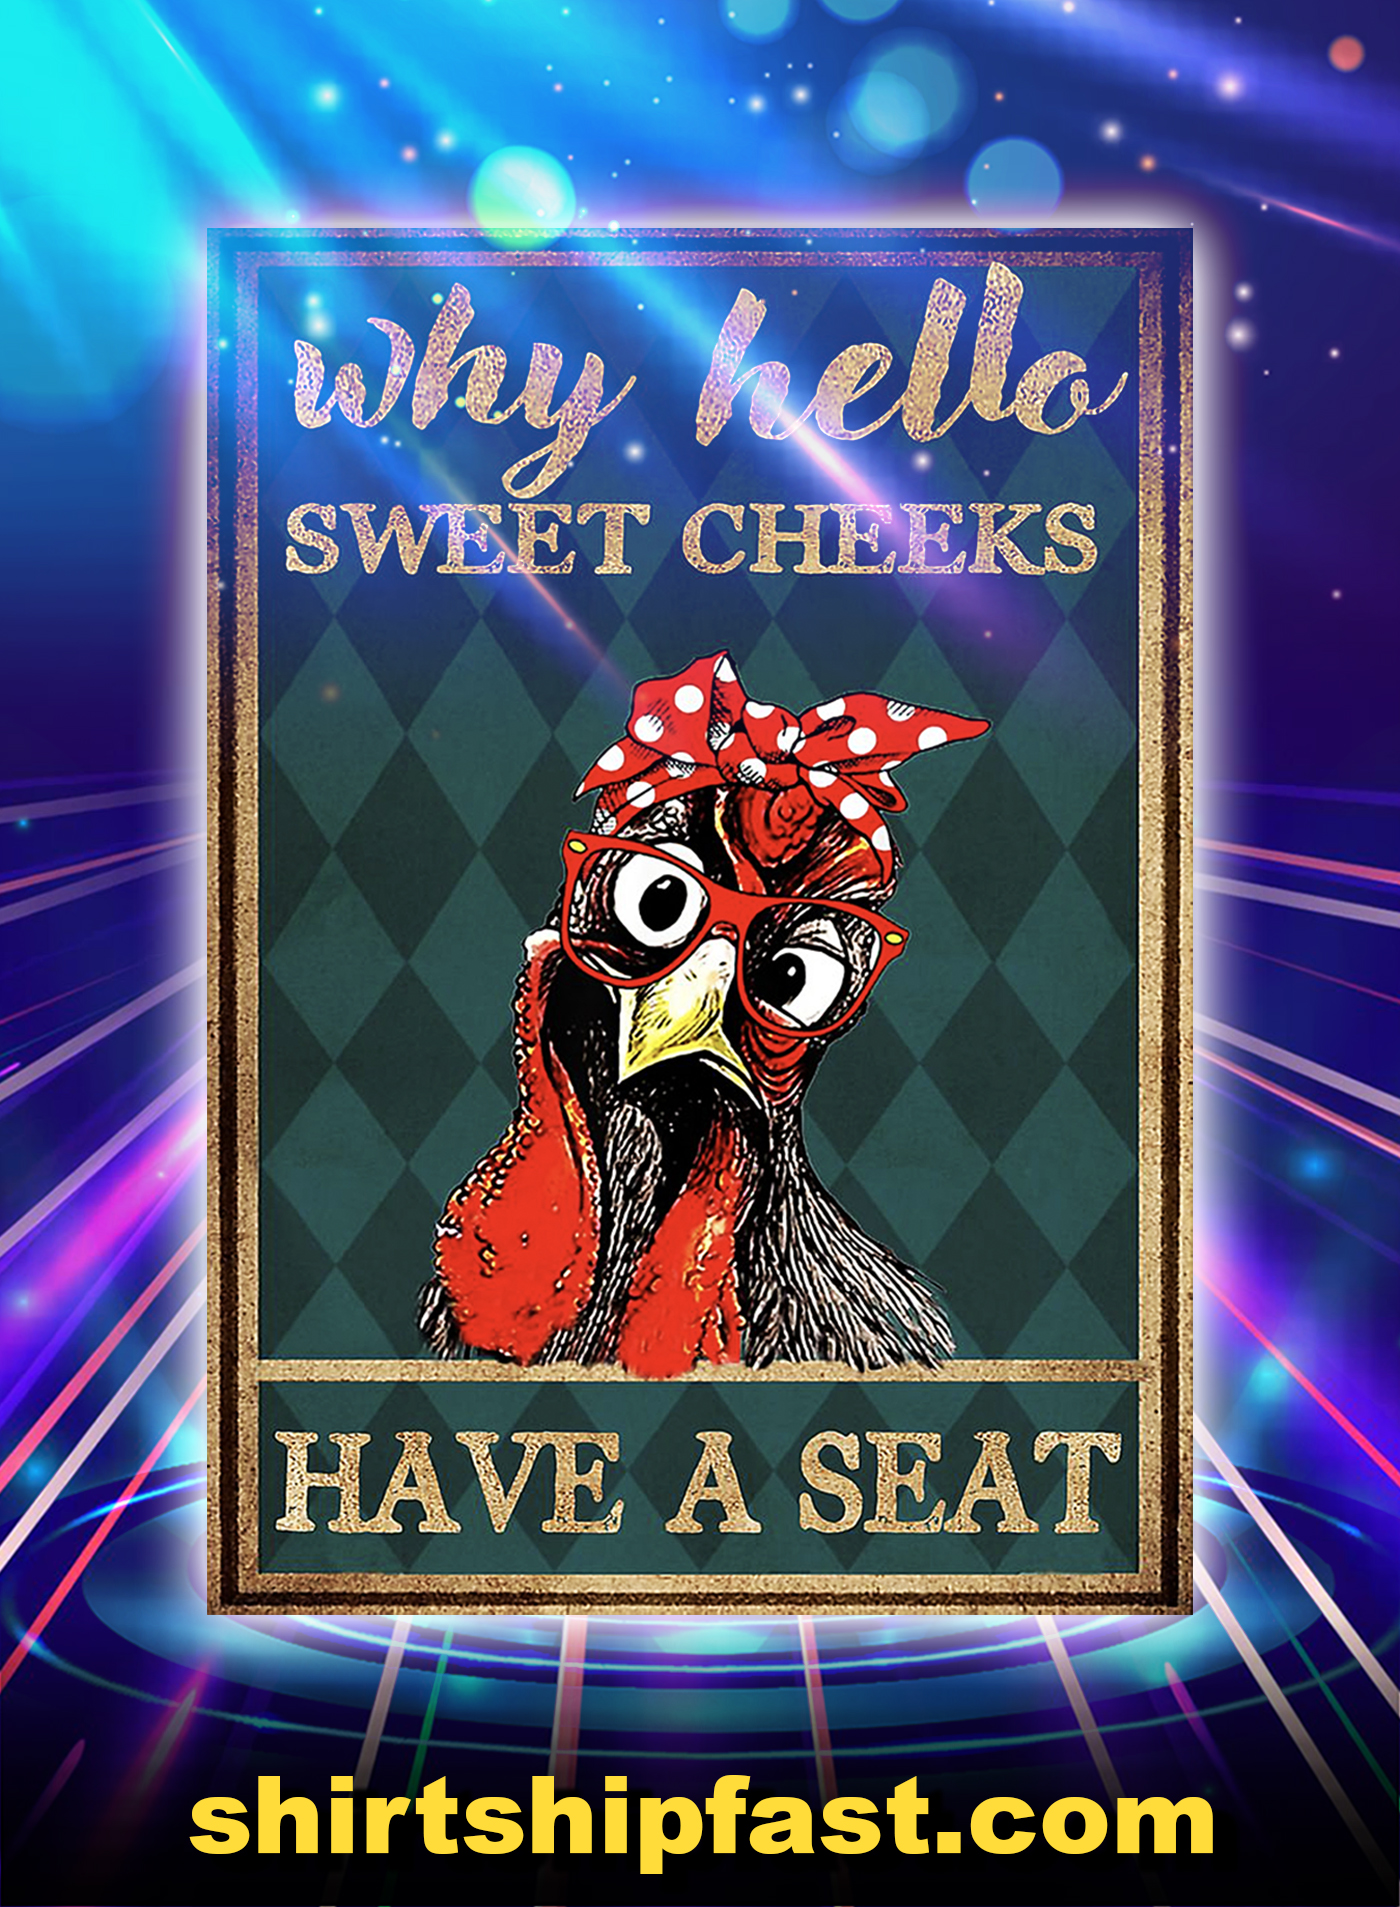 Chicken why hello sweet cheeks have a seat poster - A1